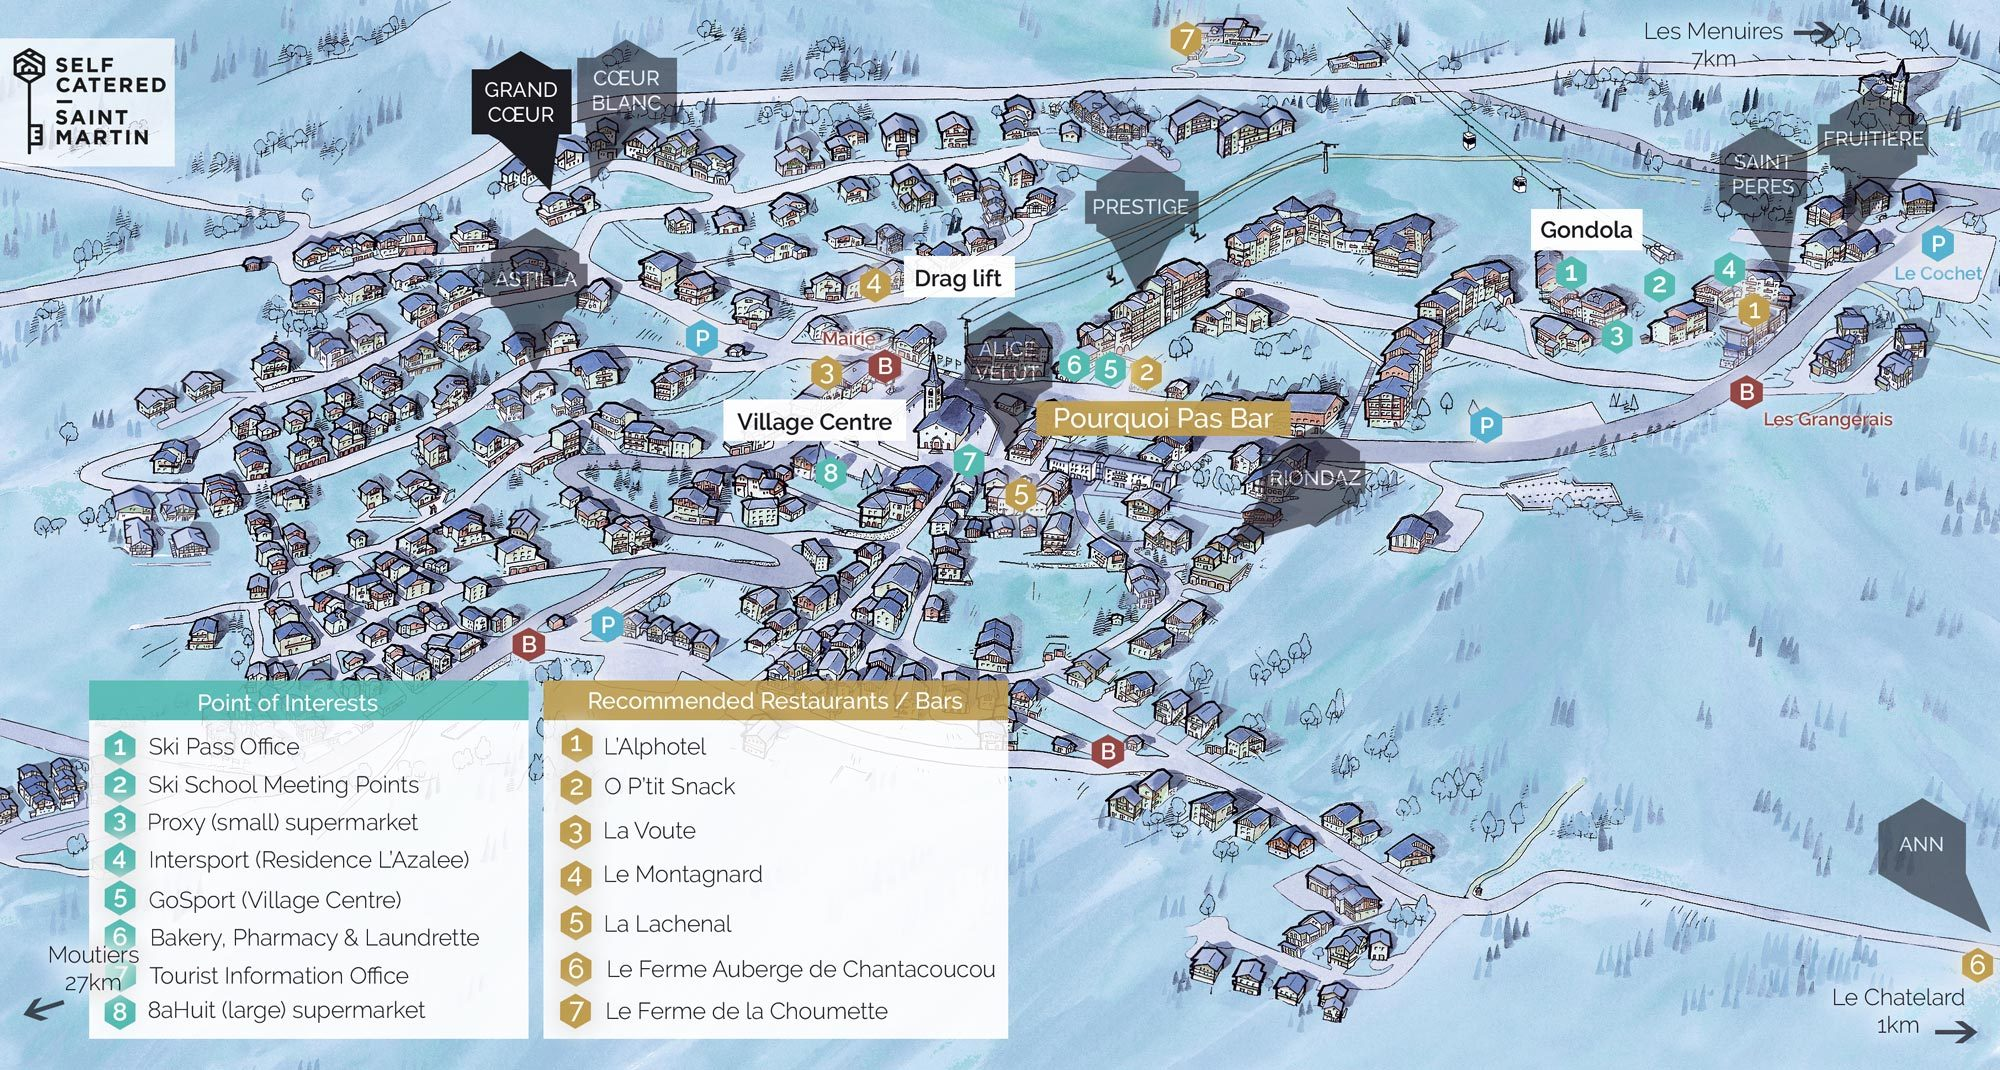 Chalet Le Grand Coeur in St Martin de Belleville | Resort Map | Self Catered - Saint Martin